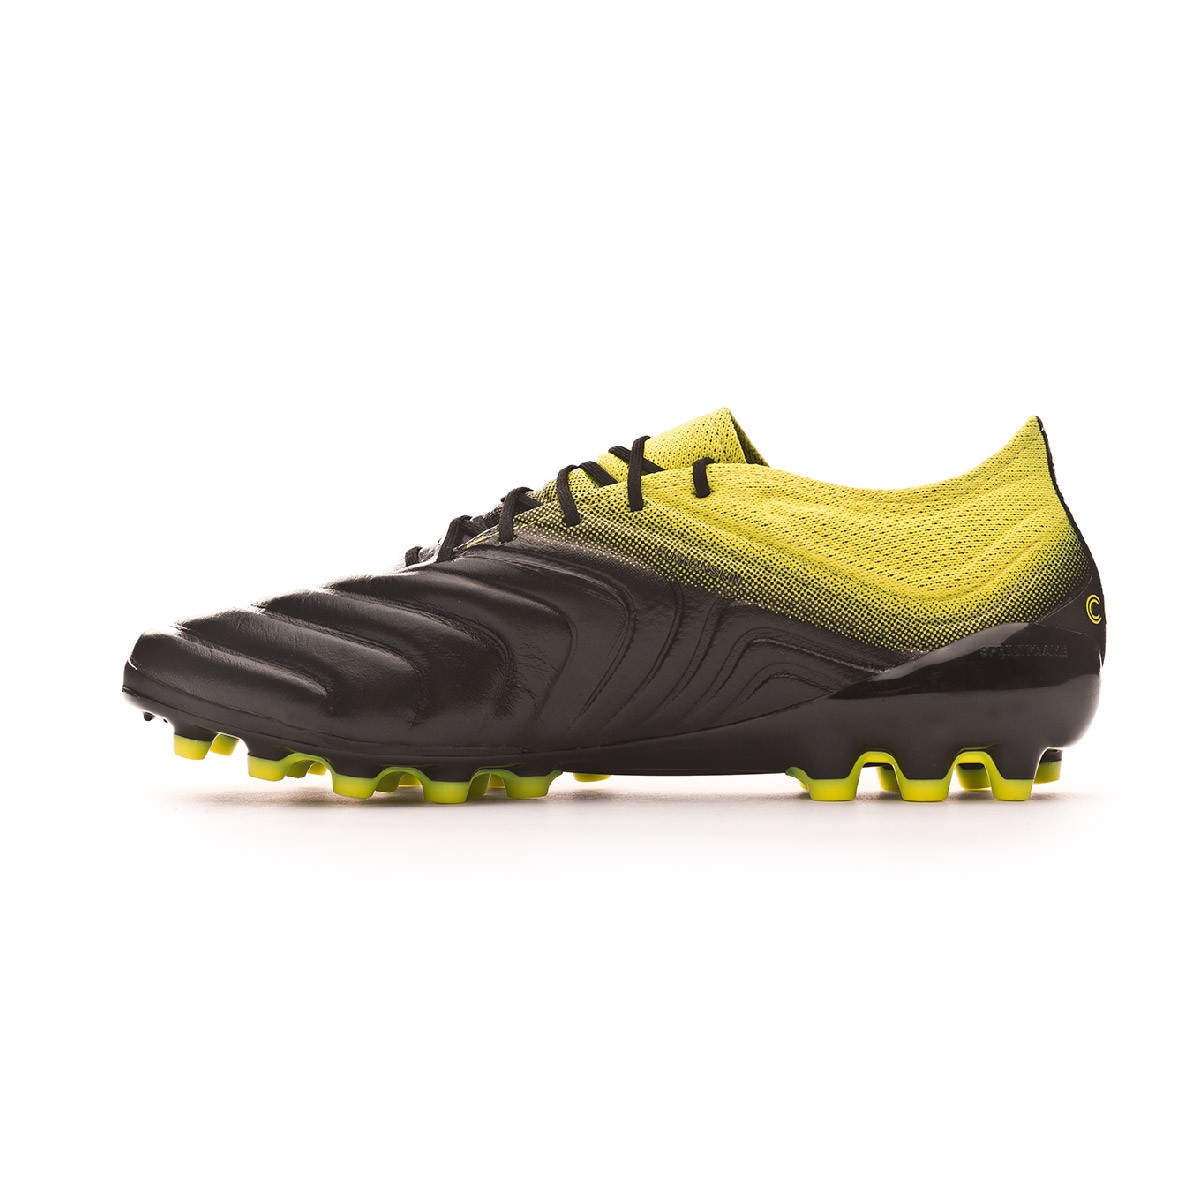 finest selection 31b50 c96e4 Boot adidas Copa 19.1 AG Core black-Solar yellow-Core black - Football  store Fútbol Emotion